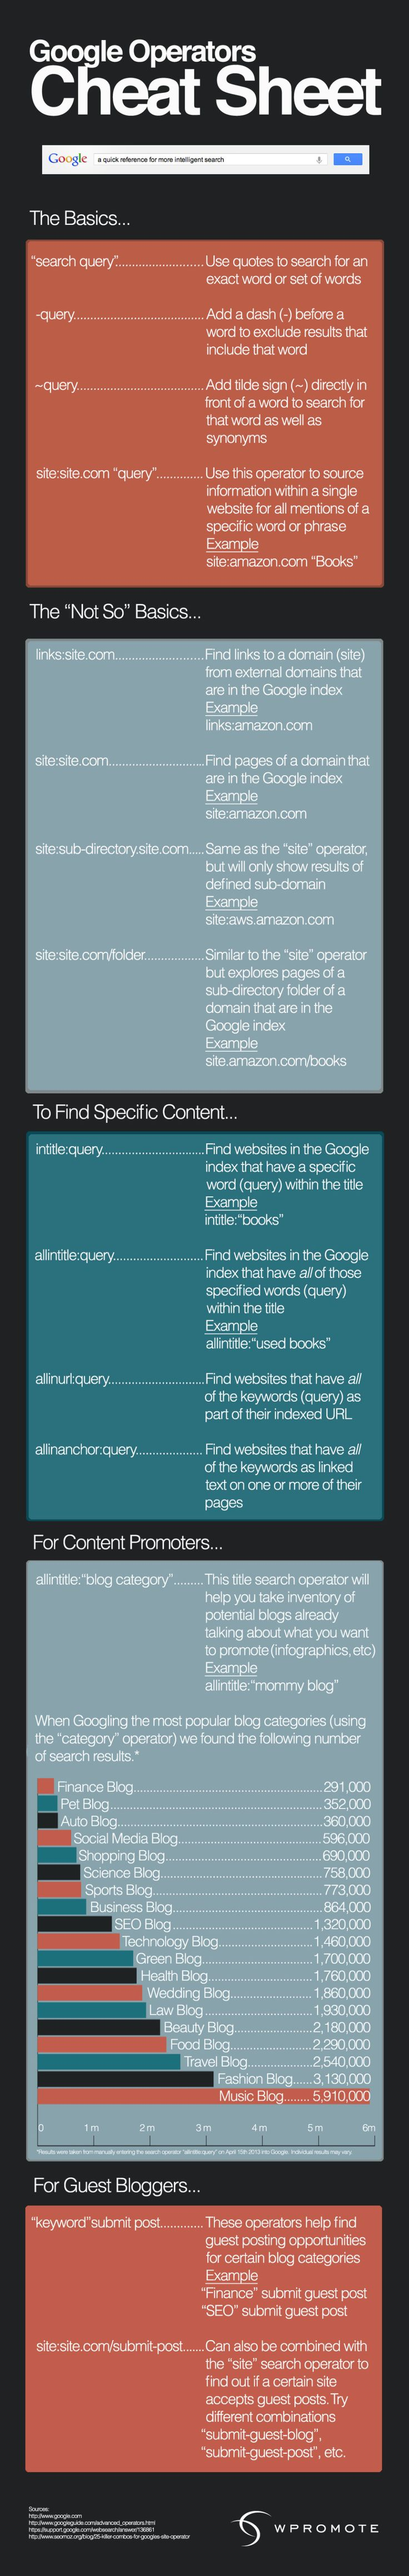 Cheat Sheet To Using Google Search More Effectively